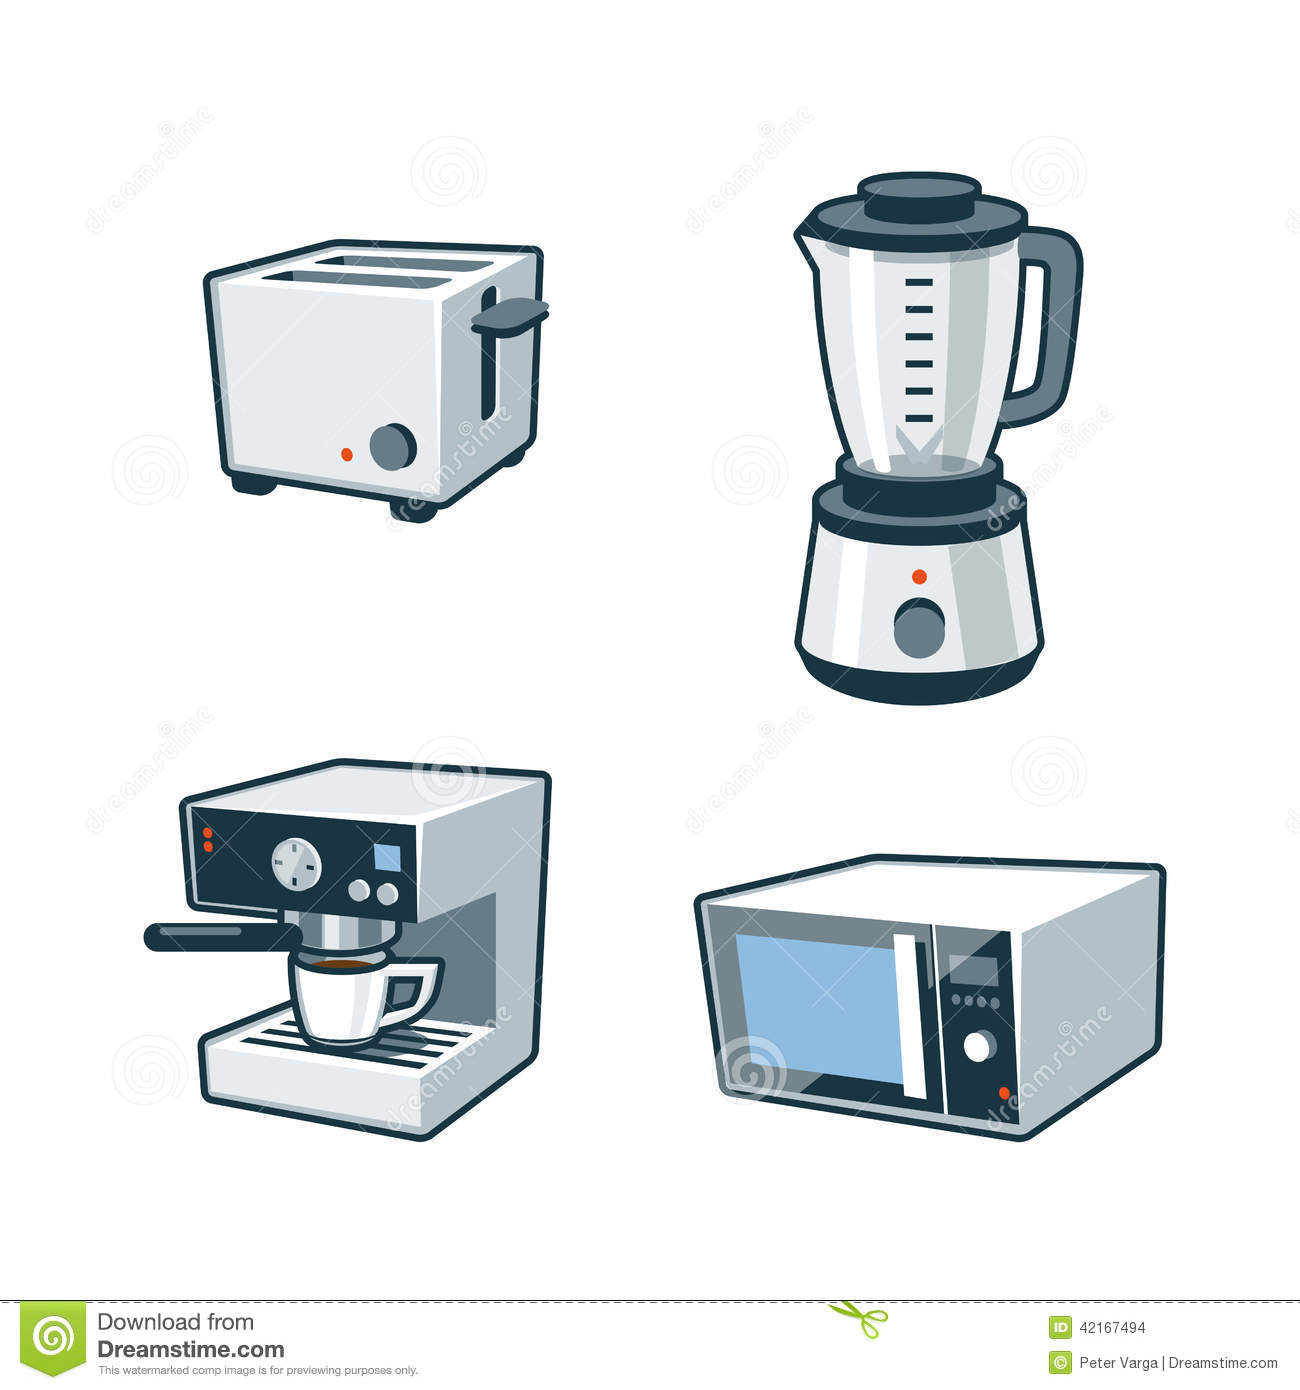 Set of four cartoon vector icons of a toaster blender coffee maker